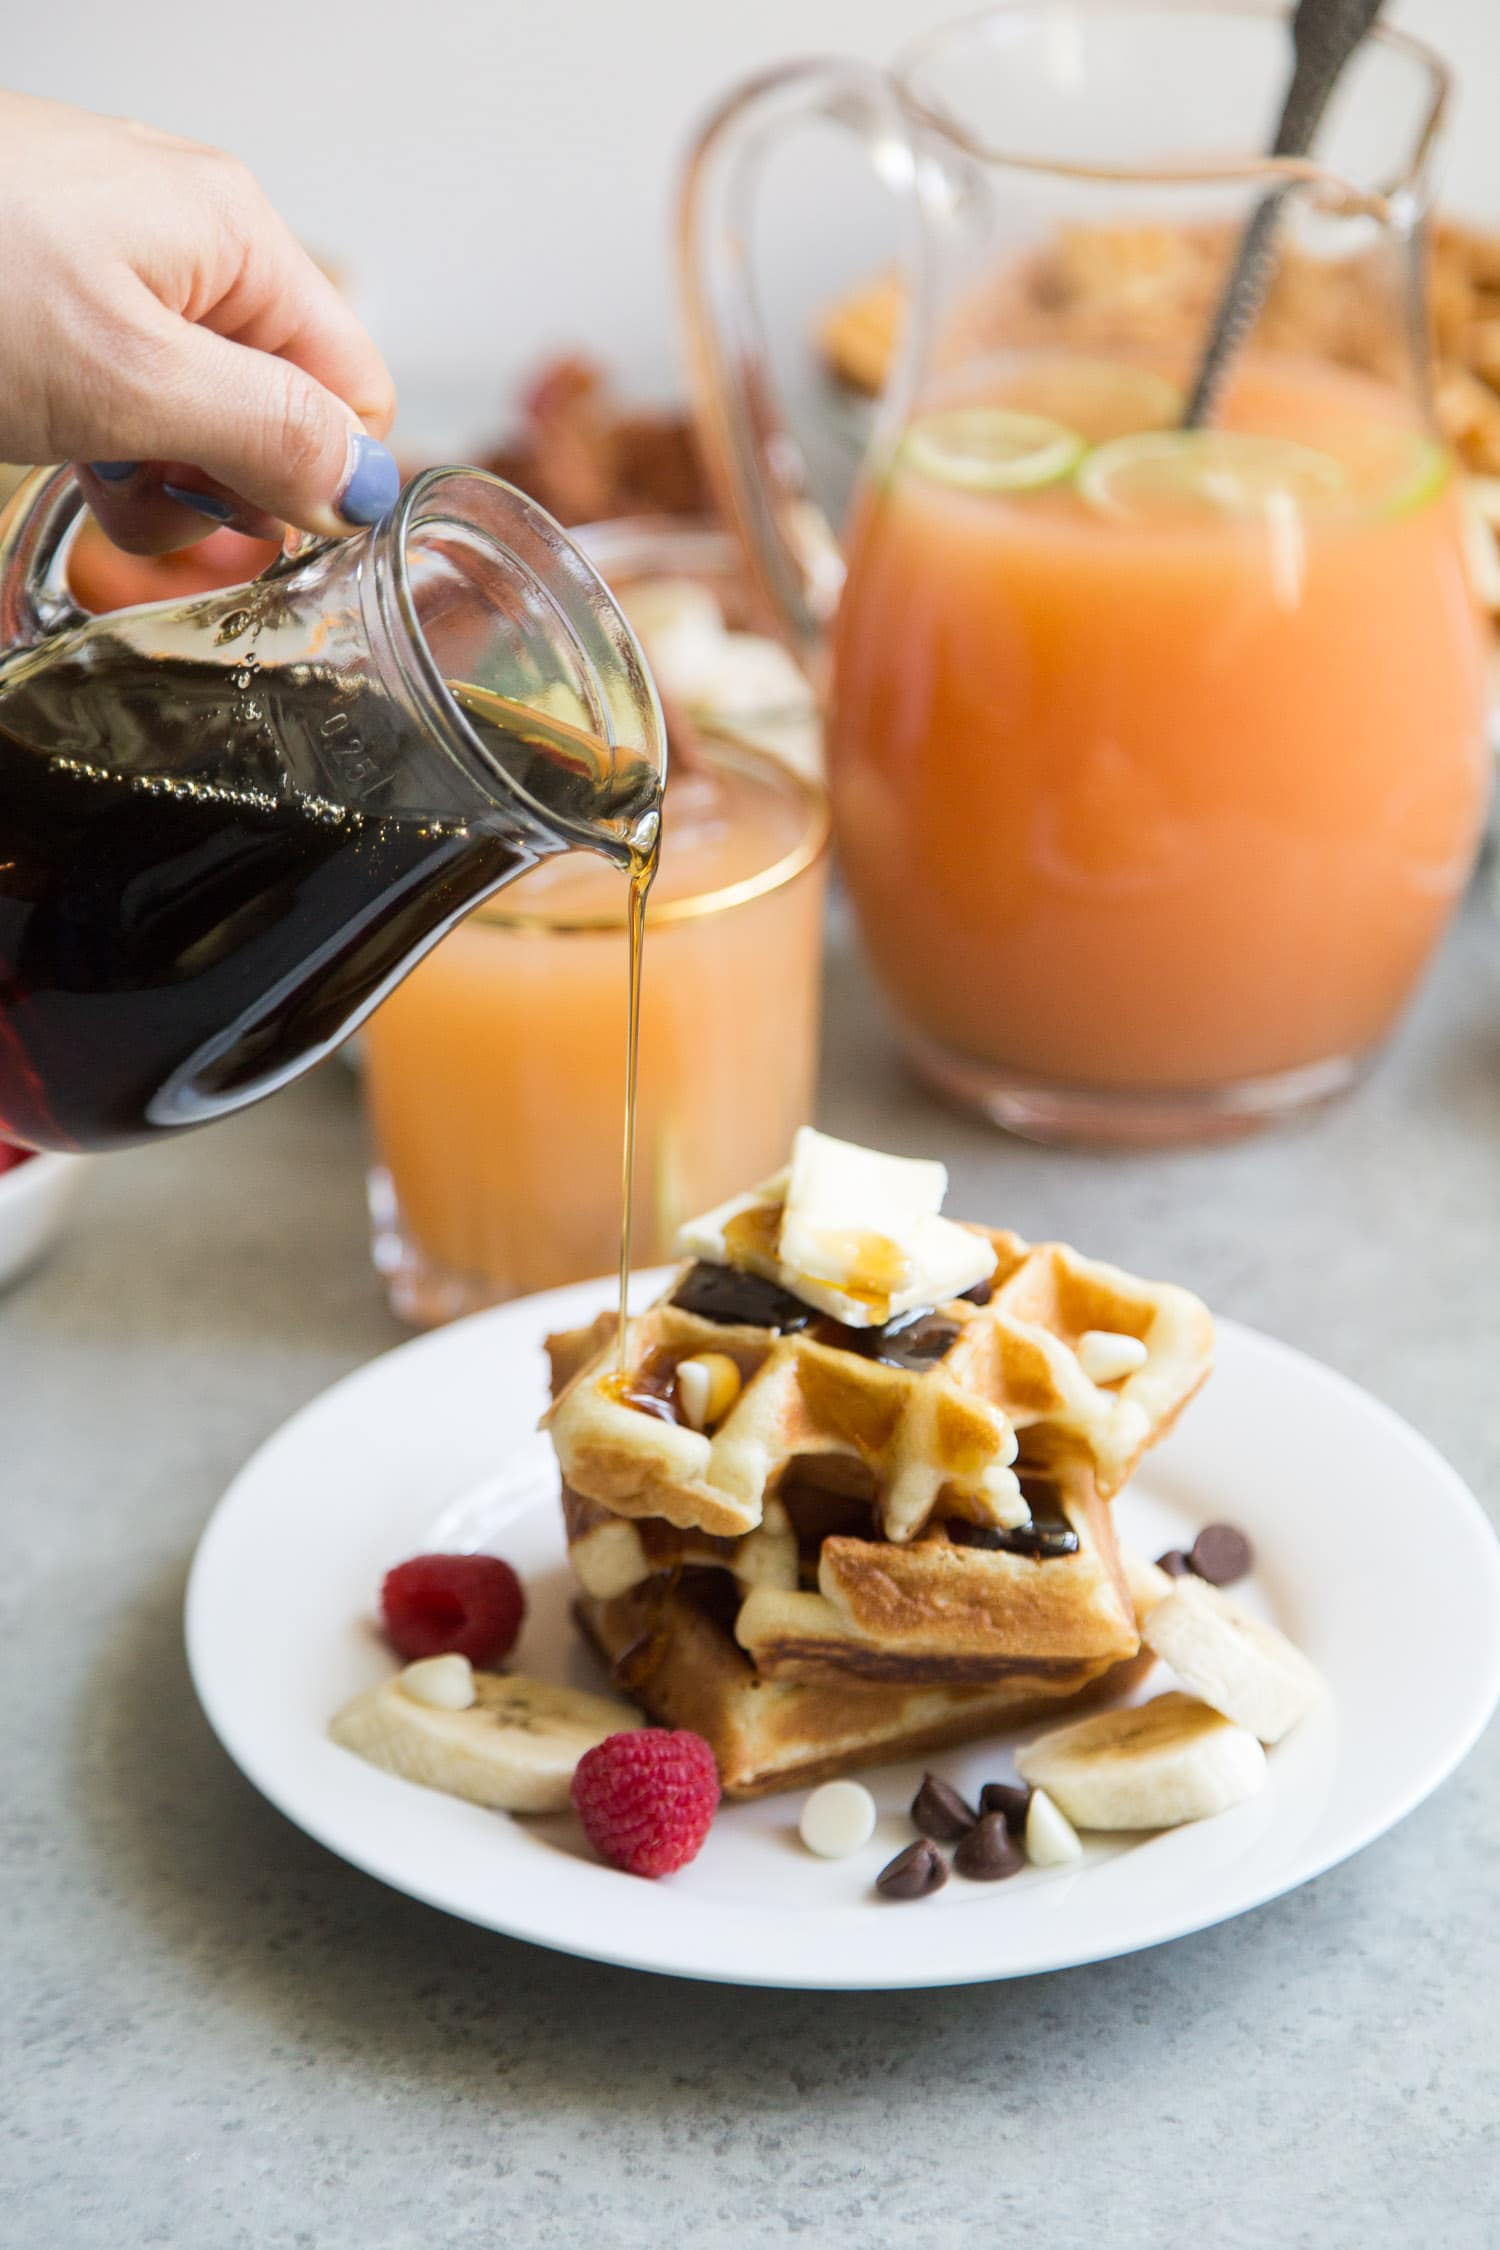 DIY waffle bar and spiced vodka punch